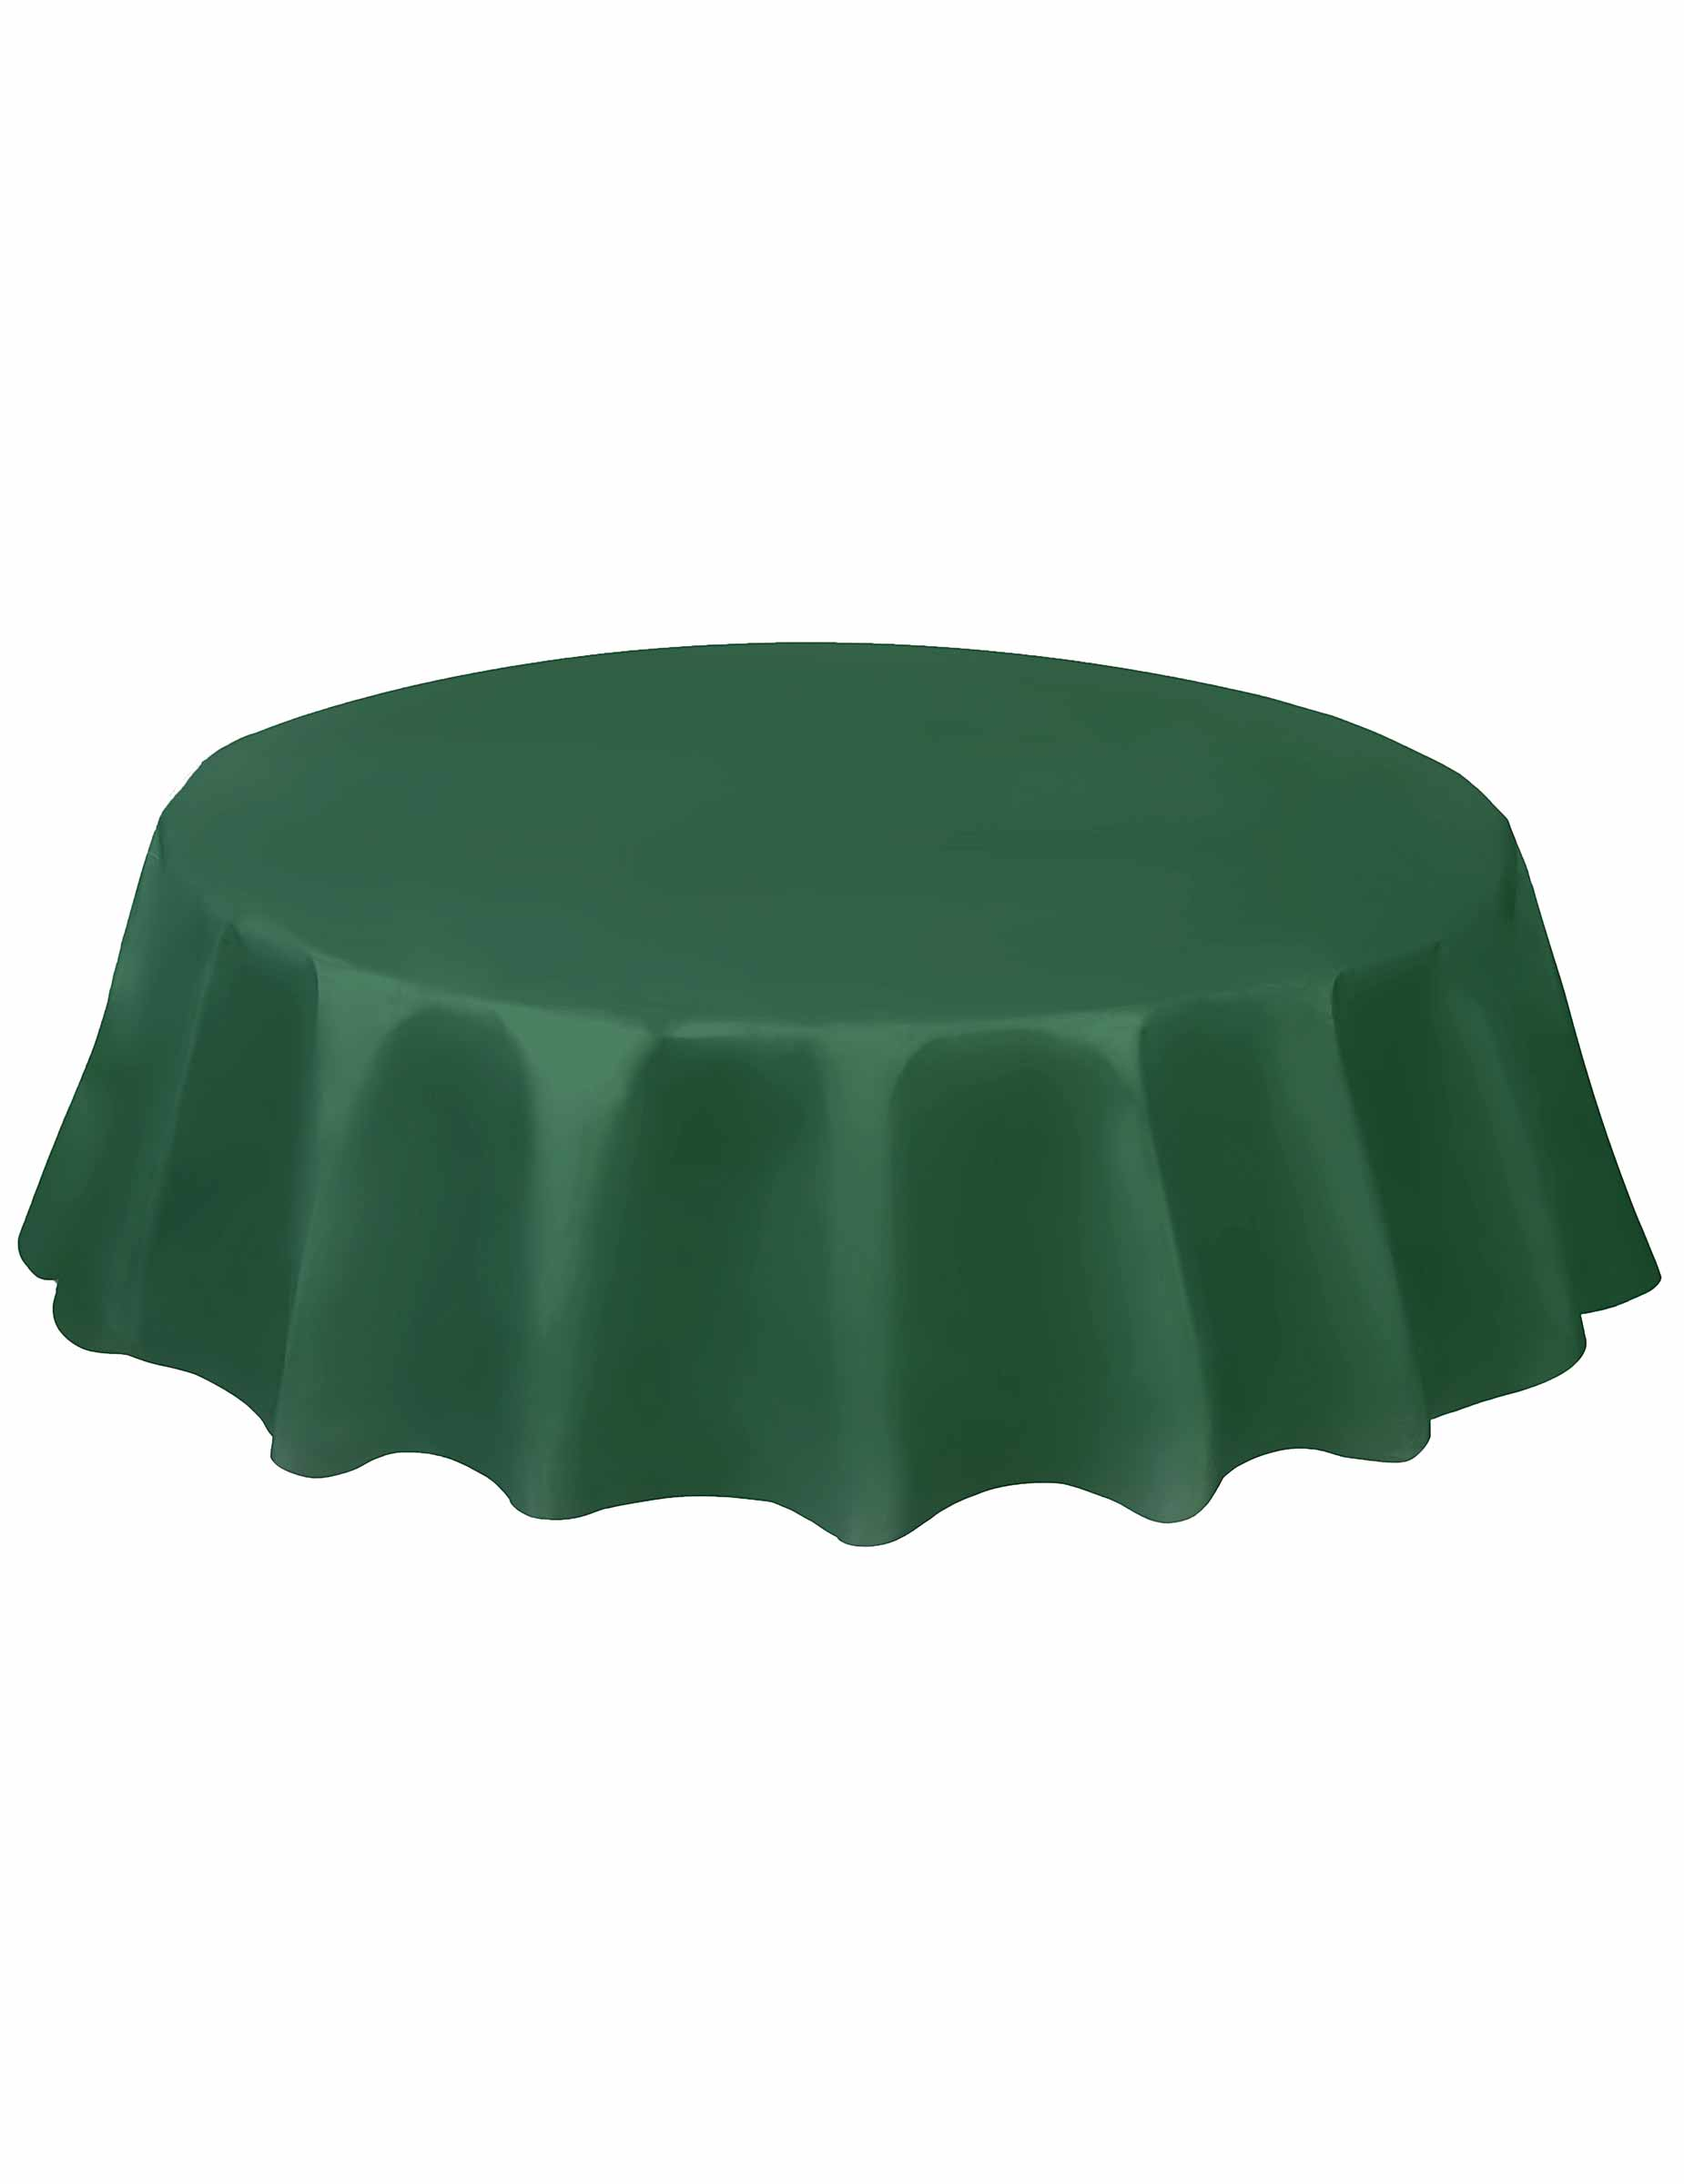 nappe ronde en plastique vert fonc deguise toi achat de decoration animation. Black Bedroom Furniture Sets. Home Design Ideas